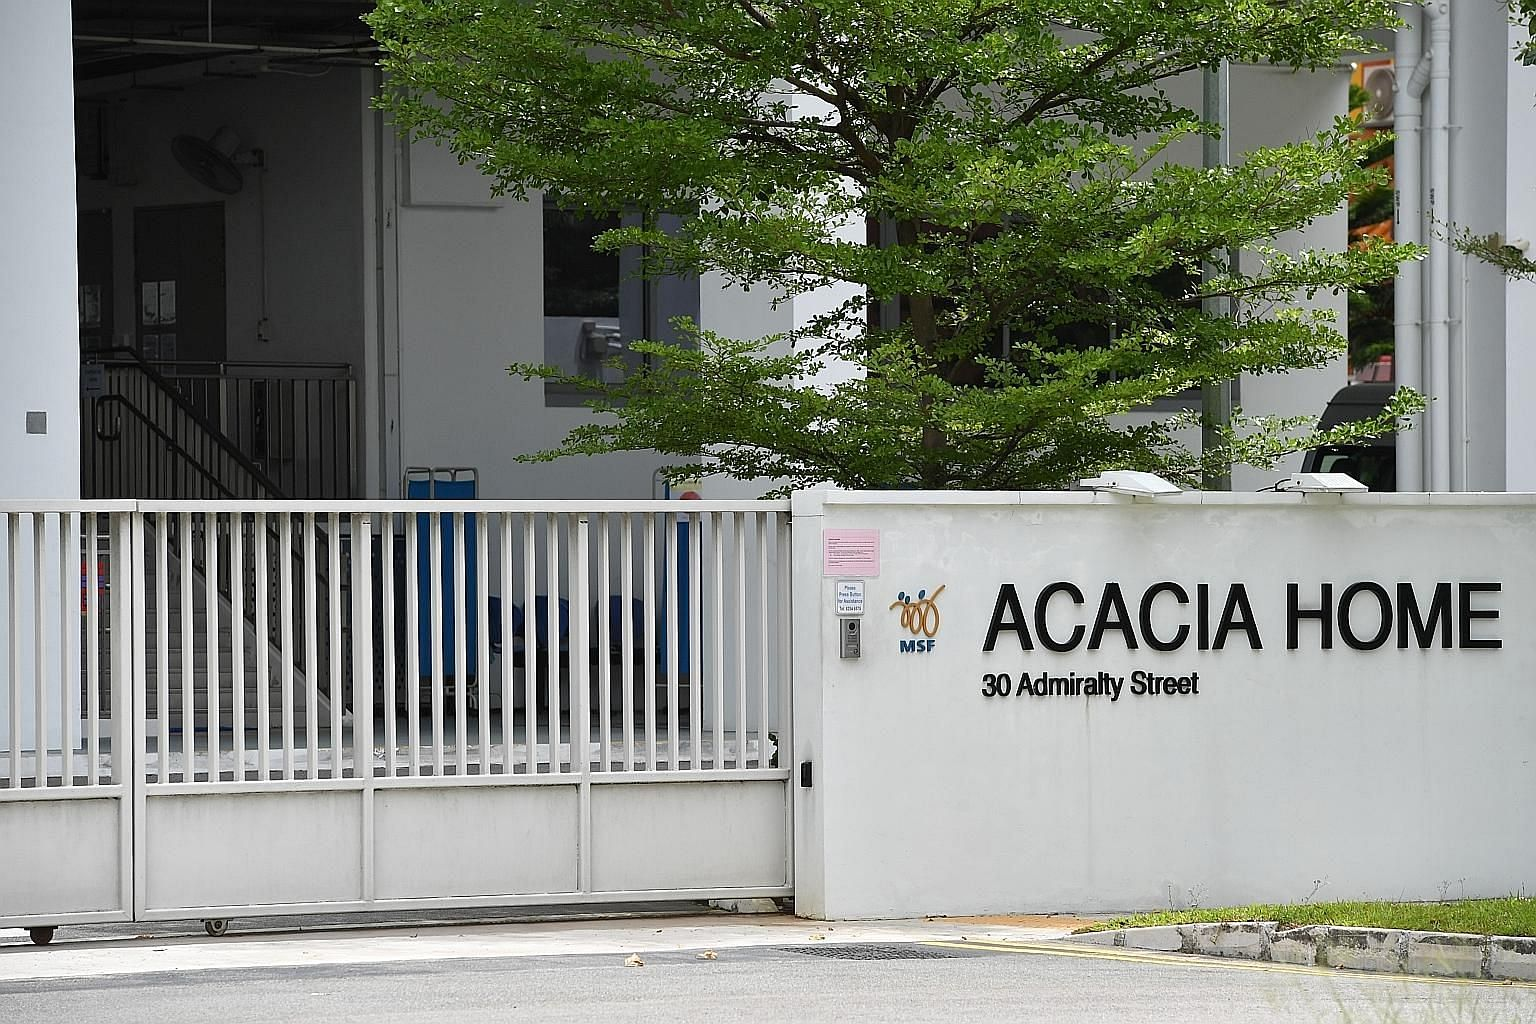 Twelve more residents and two employees at Acacia Home were found to have Covid-19, after a resident was diagnosed earlier. ST PHOTO: CHONG JUN LIANG